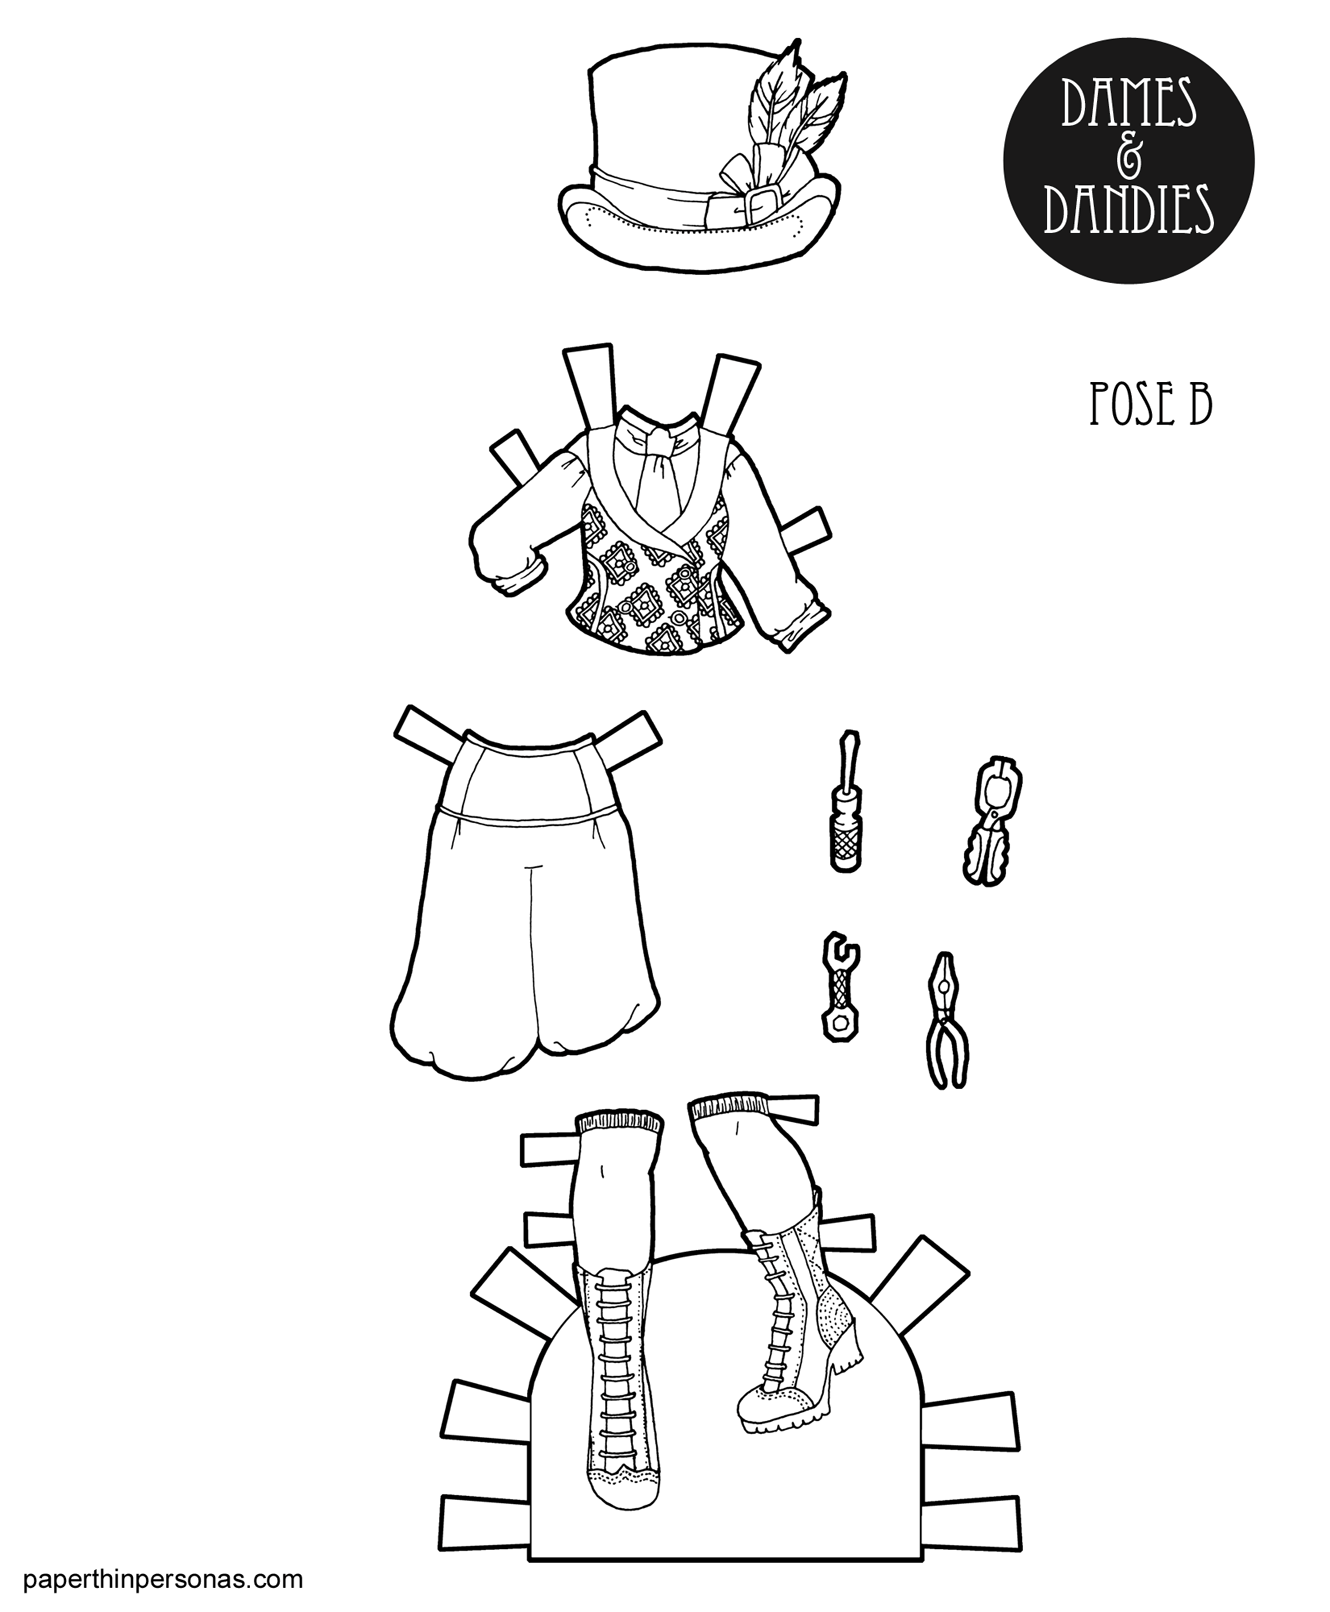 Steampunk Paper Doll Clothing Coloring Page From Paperthinpersonas Com